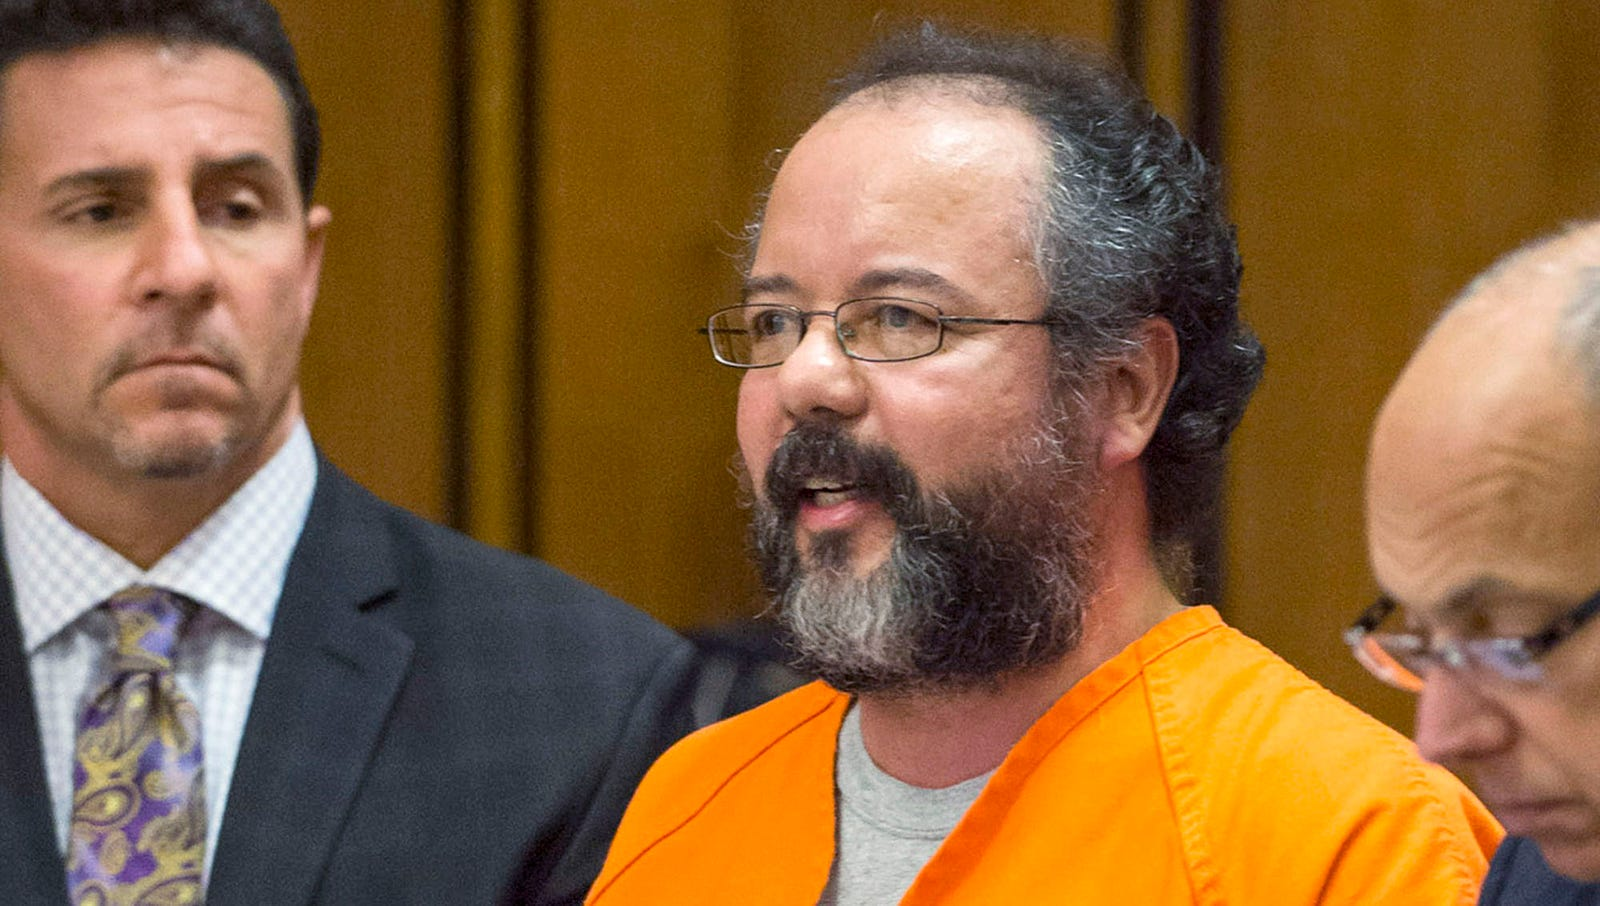 """Ariel Castro: """"Your honor, I'd be happy to take the lion's share of the blame for this one."""""""